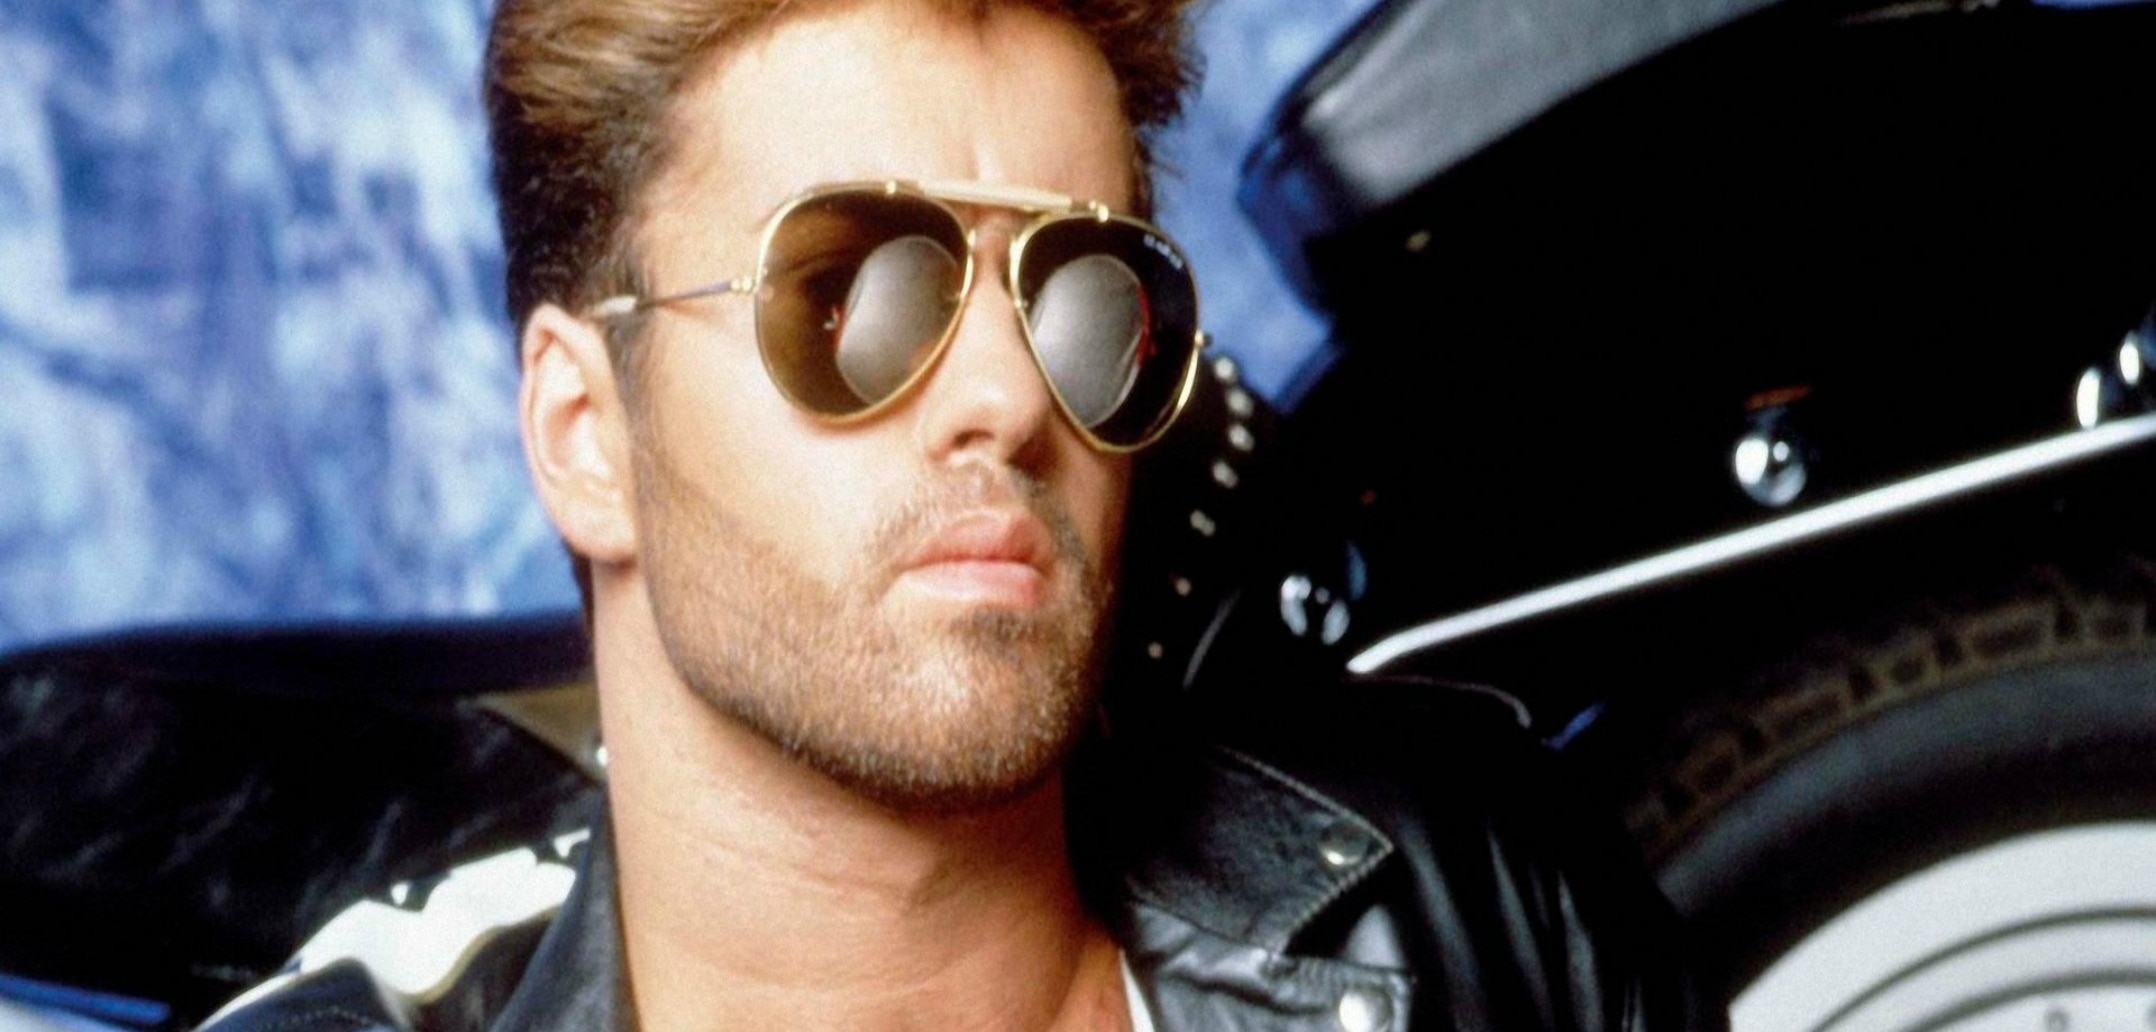 Oakland A's Want George Michael To Make Coliseum Cameo